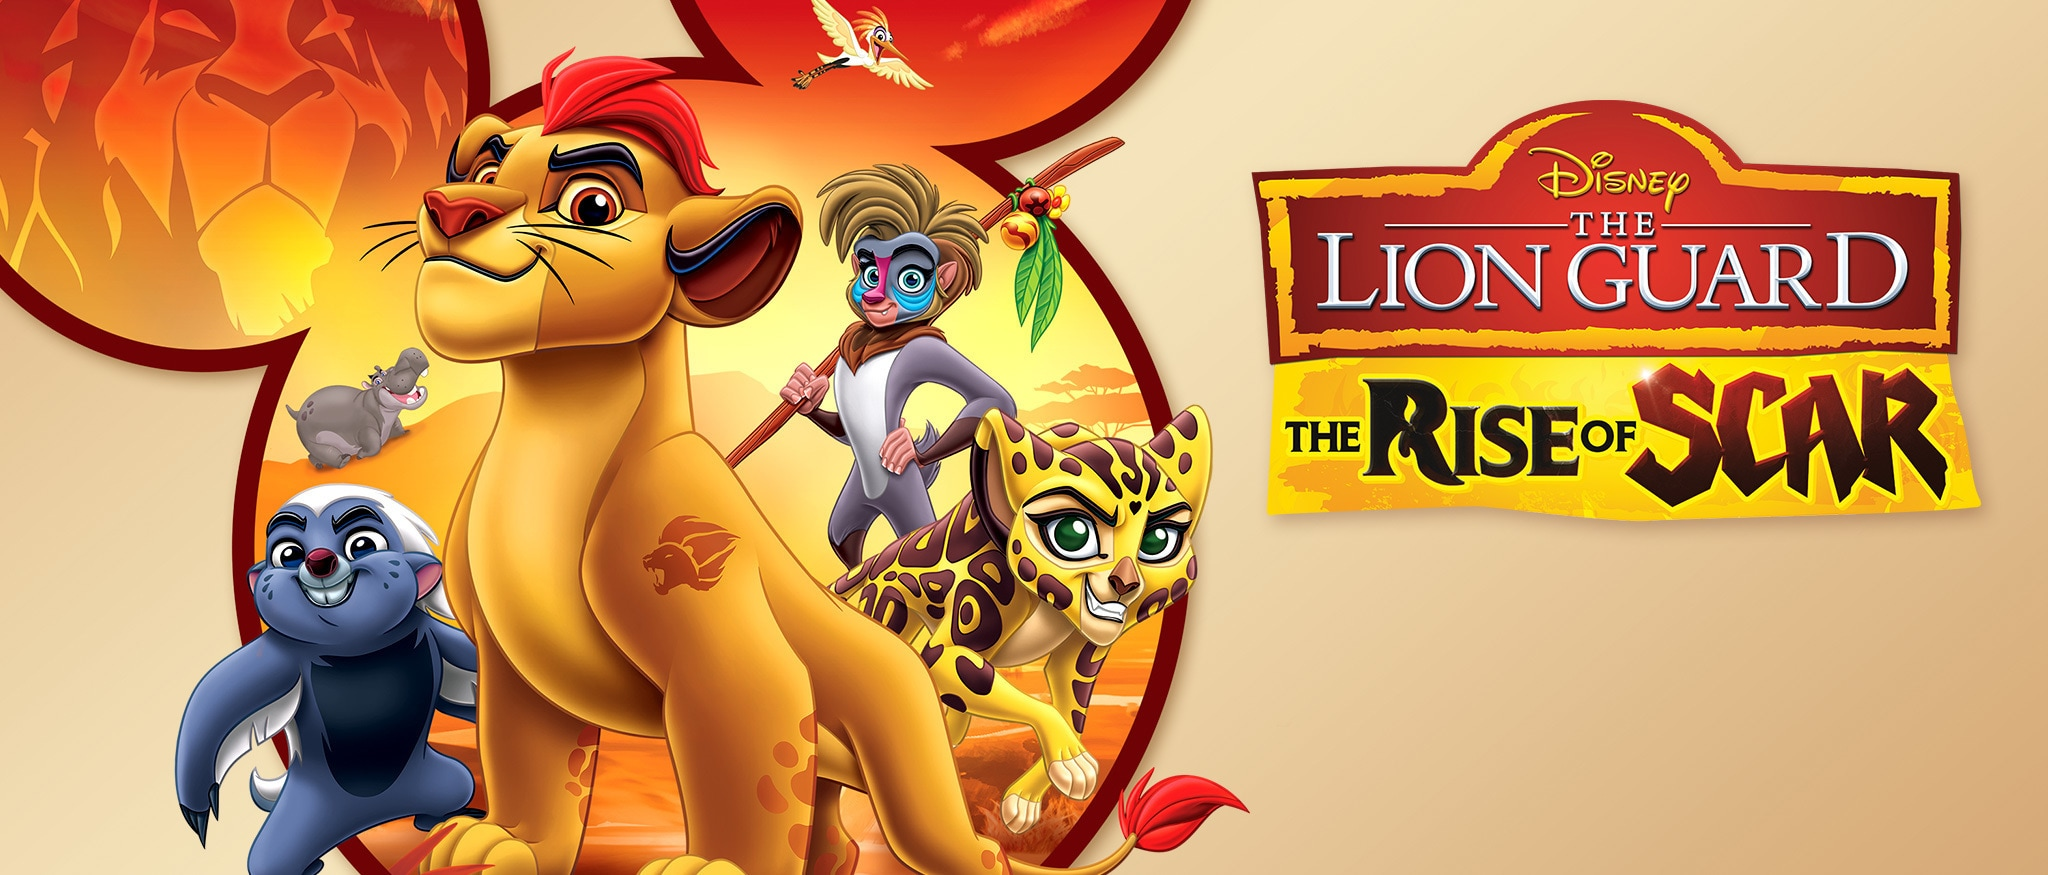 The Lion Guard - Rise of Scar